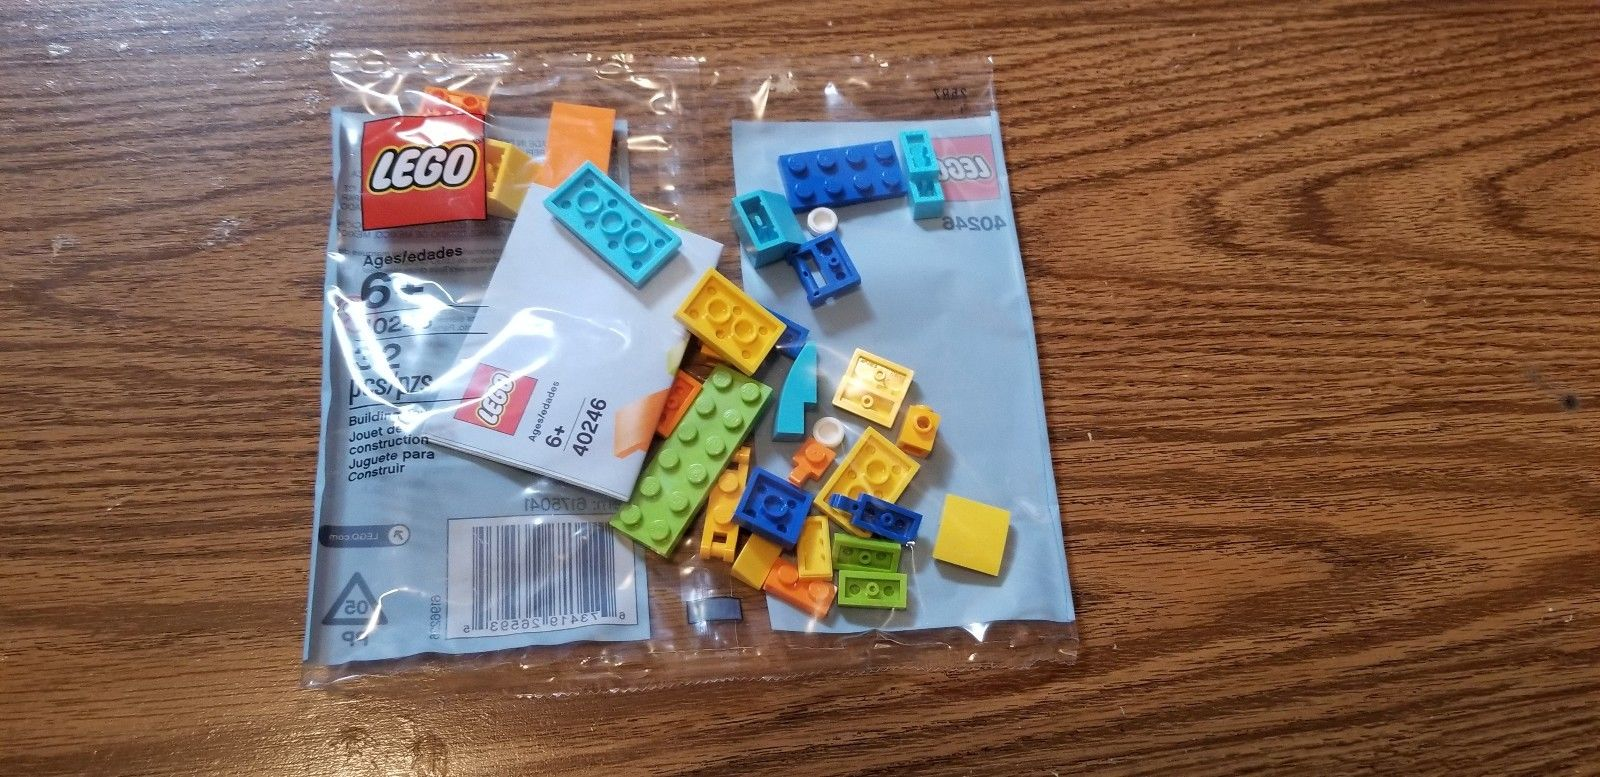 FREE LEGO Car and Gas Pump Mini Model Build at LEGO Stores